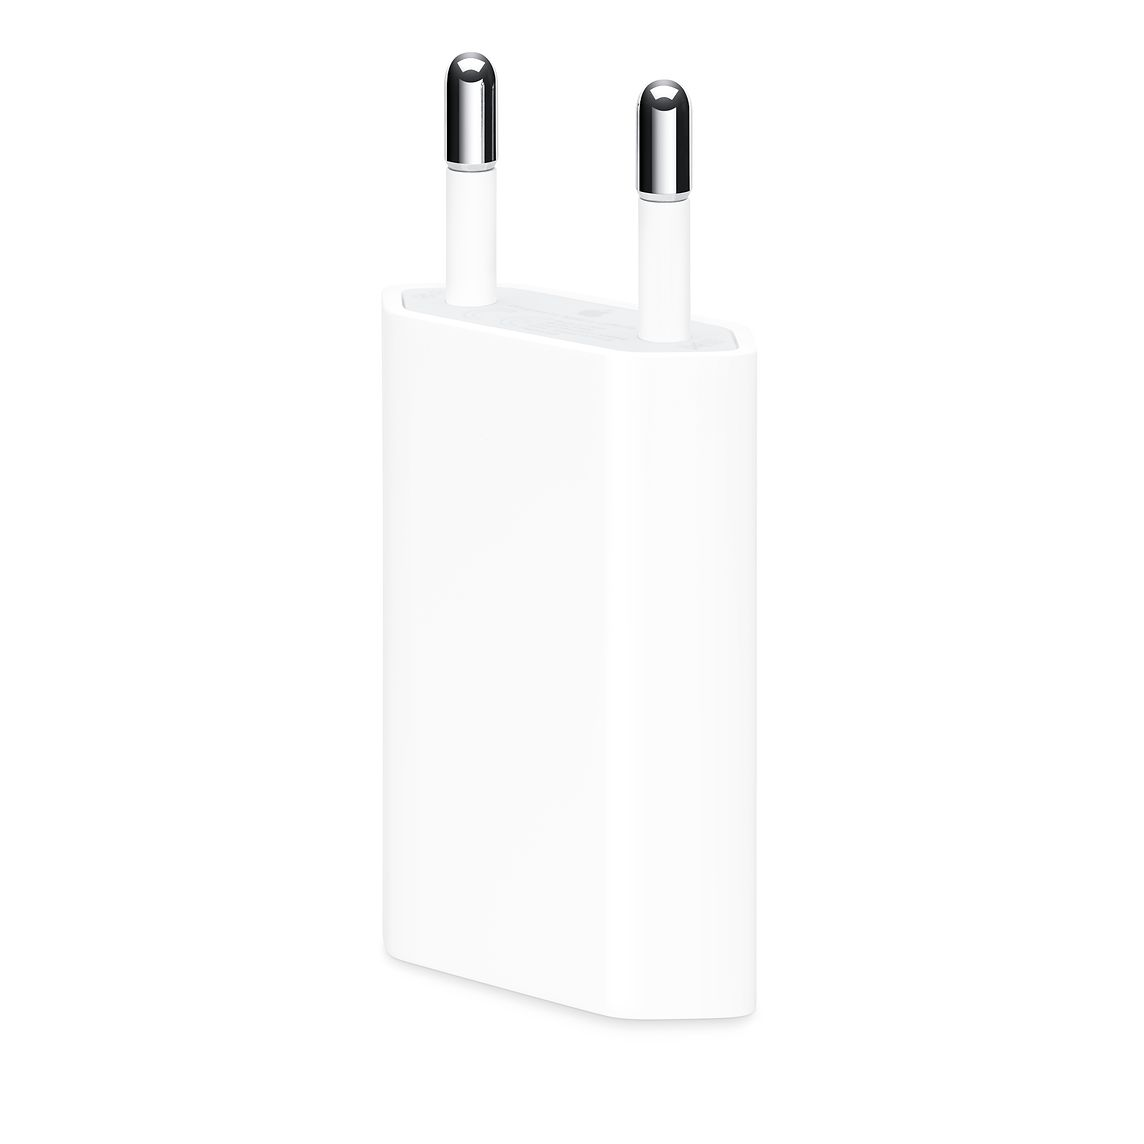 Apple 5 W USB Power Adapter (2020)